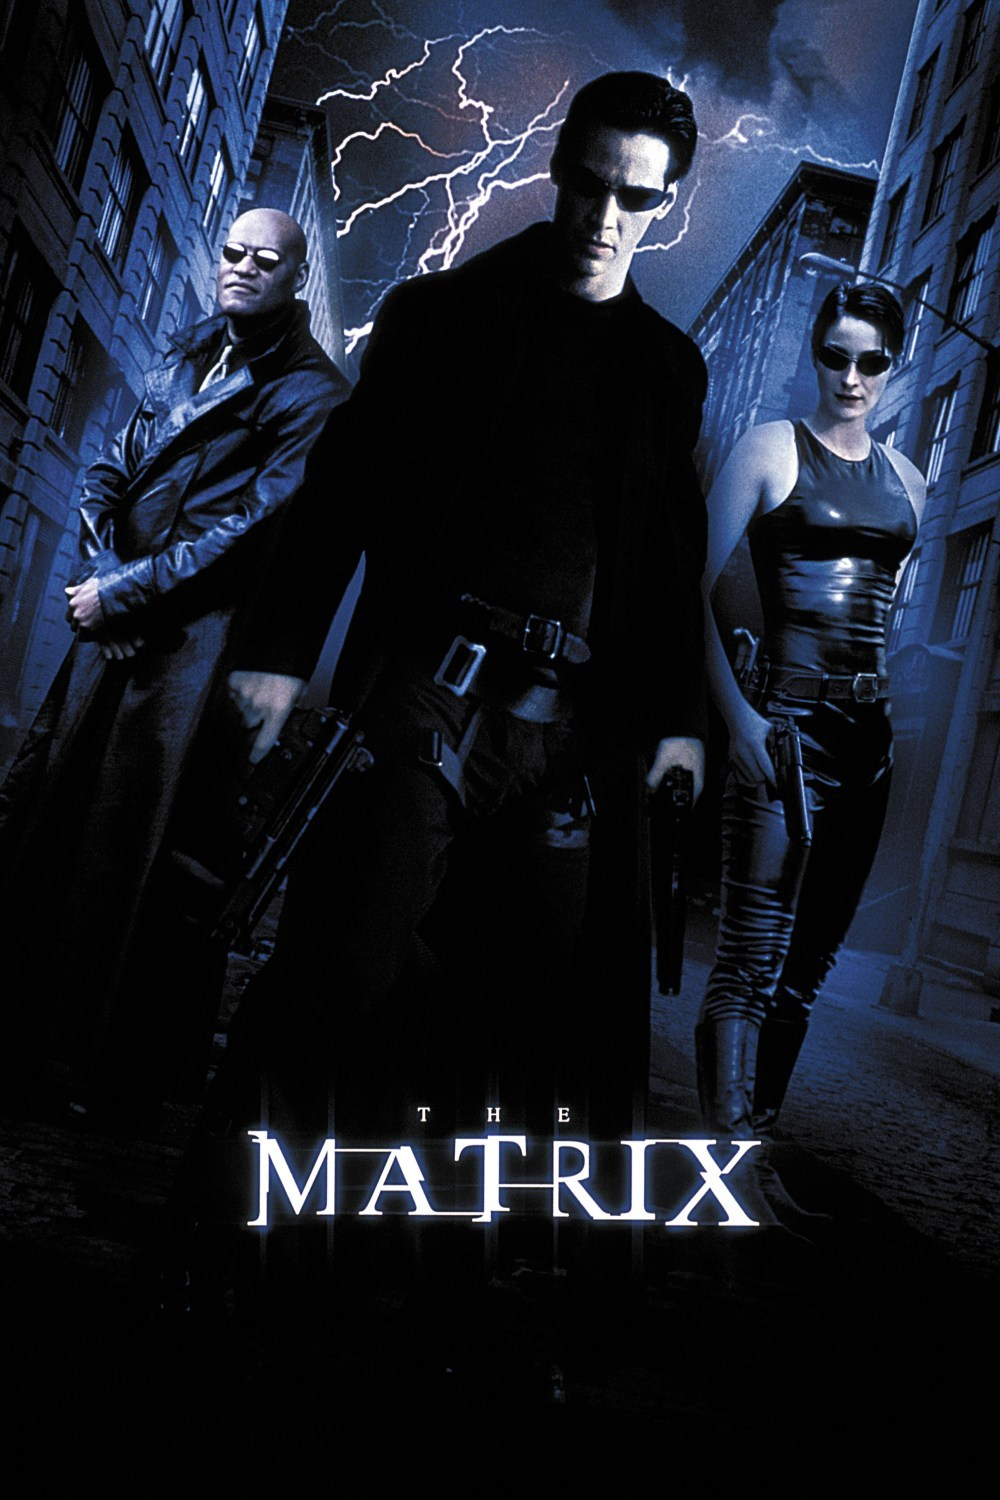 an analysis of the matrix by the wachowski brothers The matrix behind the scenes - fight choreography (1999) - wachowki brothers movie hd - duration: 2:05 movieclips extras 64,002 views.